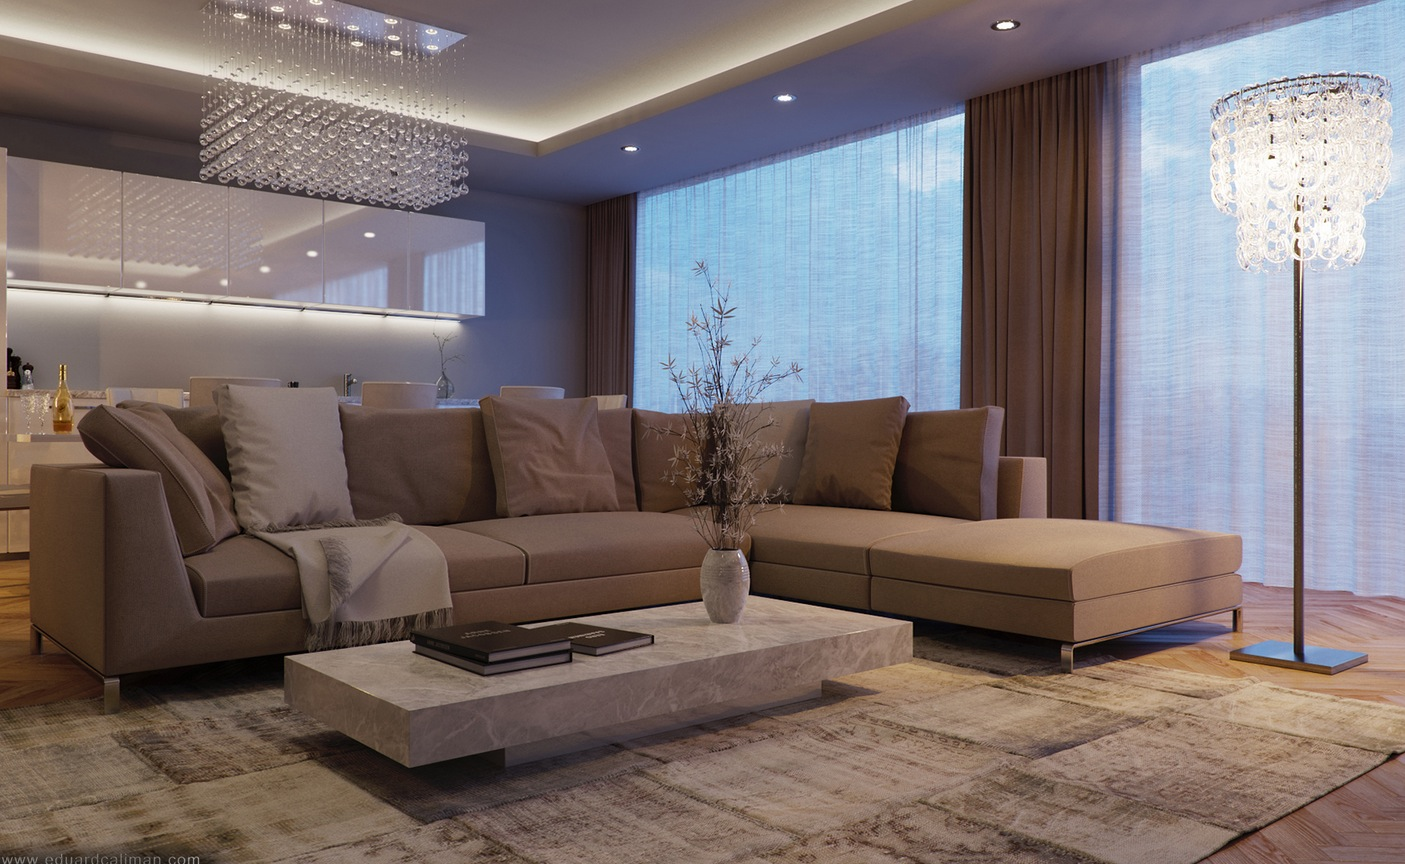 Five fab apartment designs for Living room sofa ideas